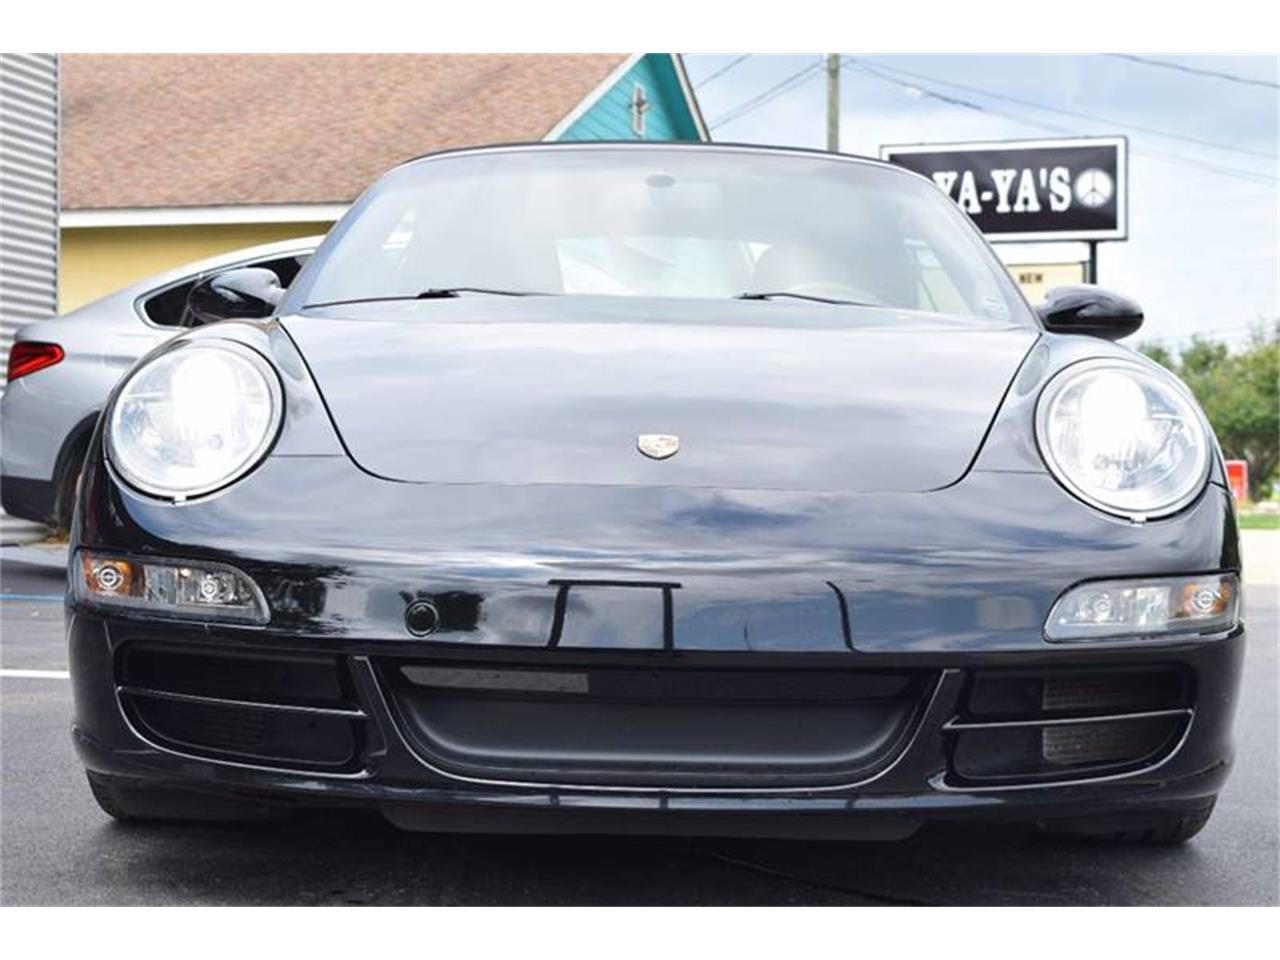 2006 Porsche 911 for sale in Biloxi, MS – photo 6